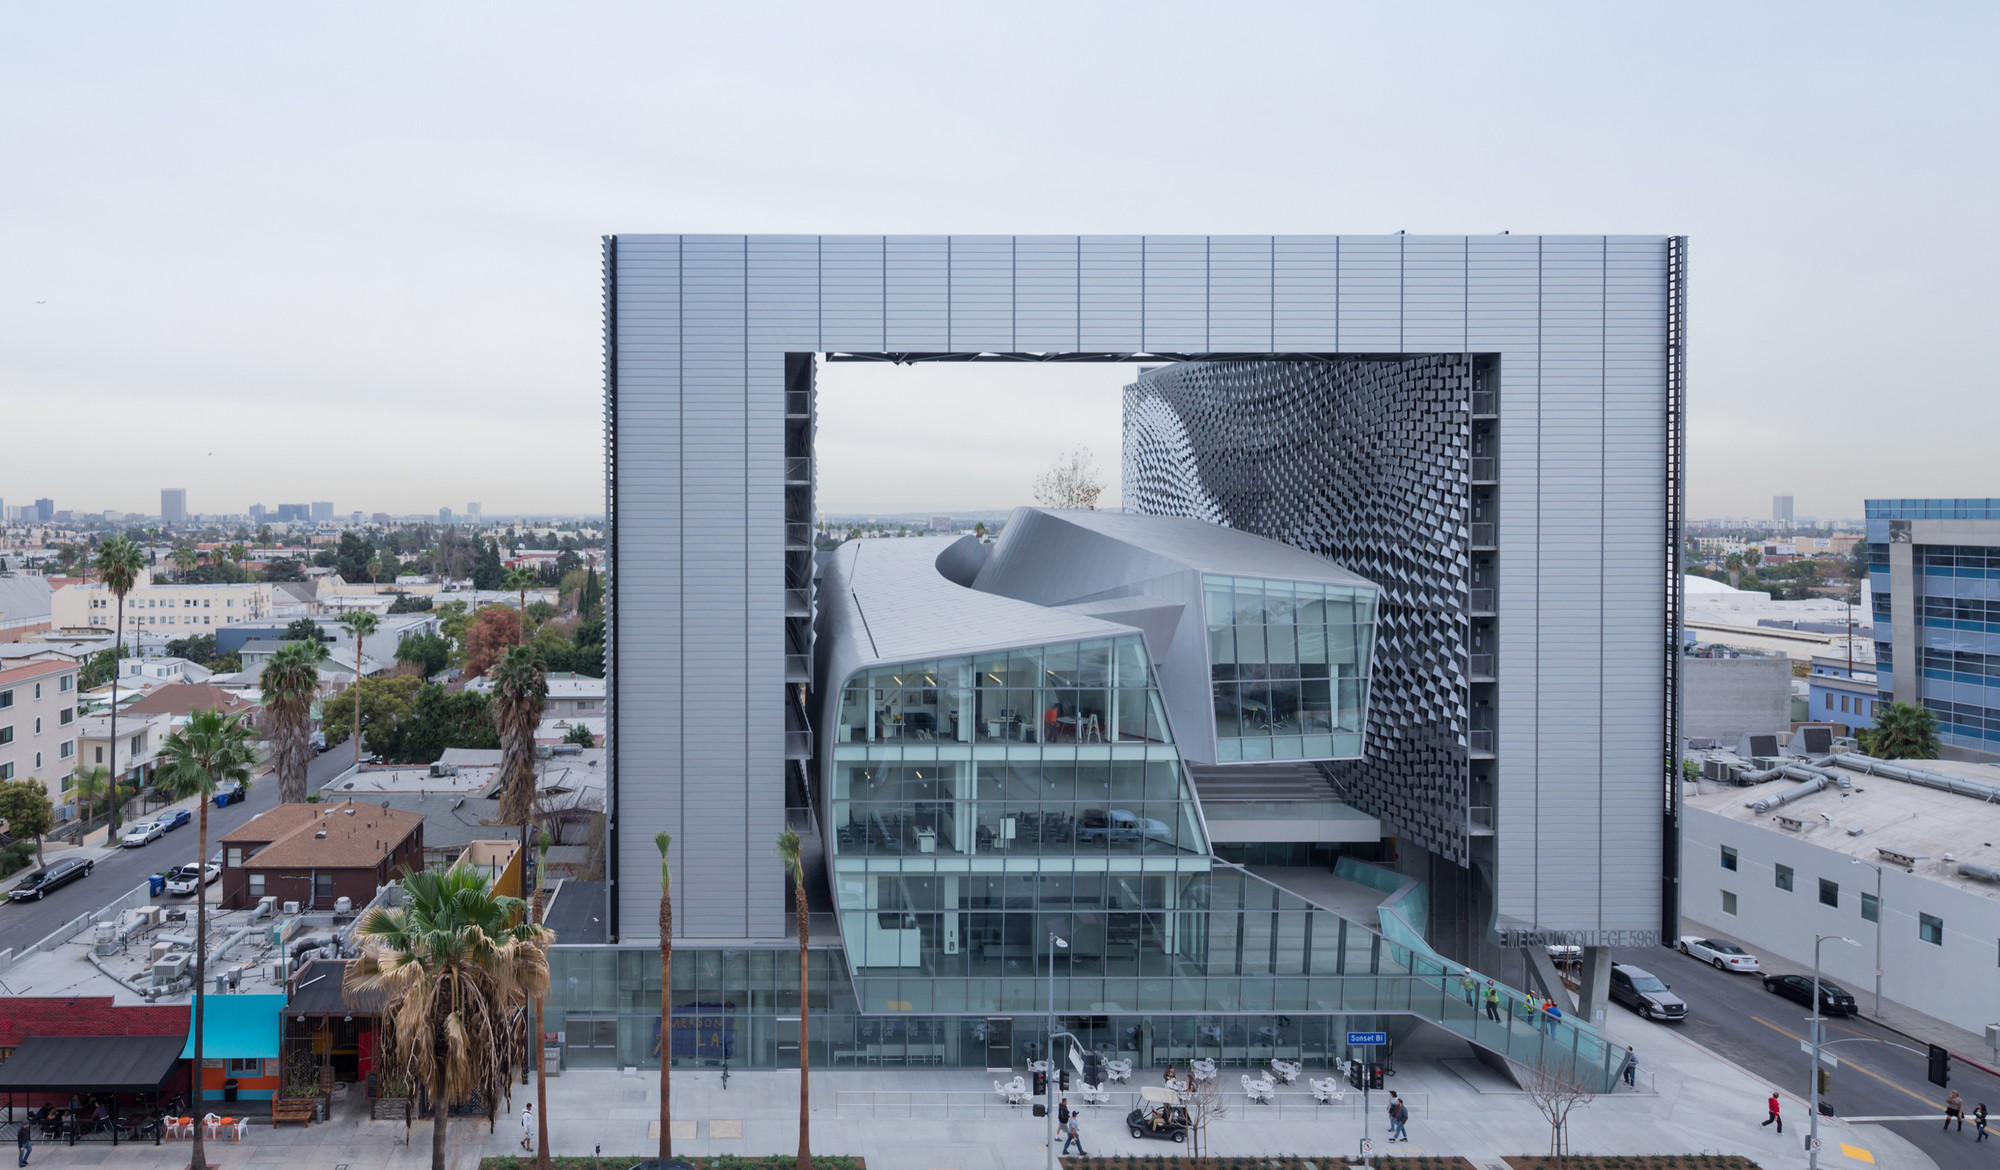 Exterior-Shot-of-the-Center-from-West-Sunset-Blvd.jpg